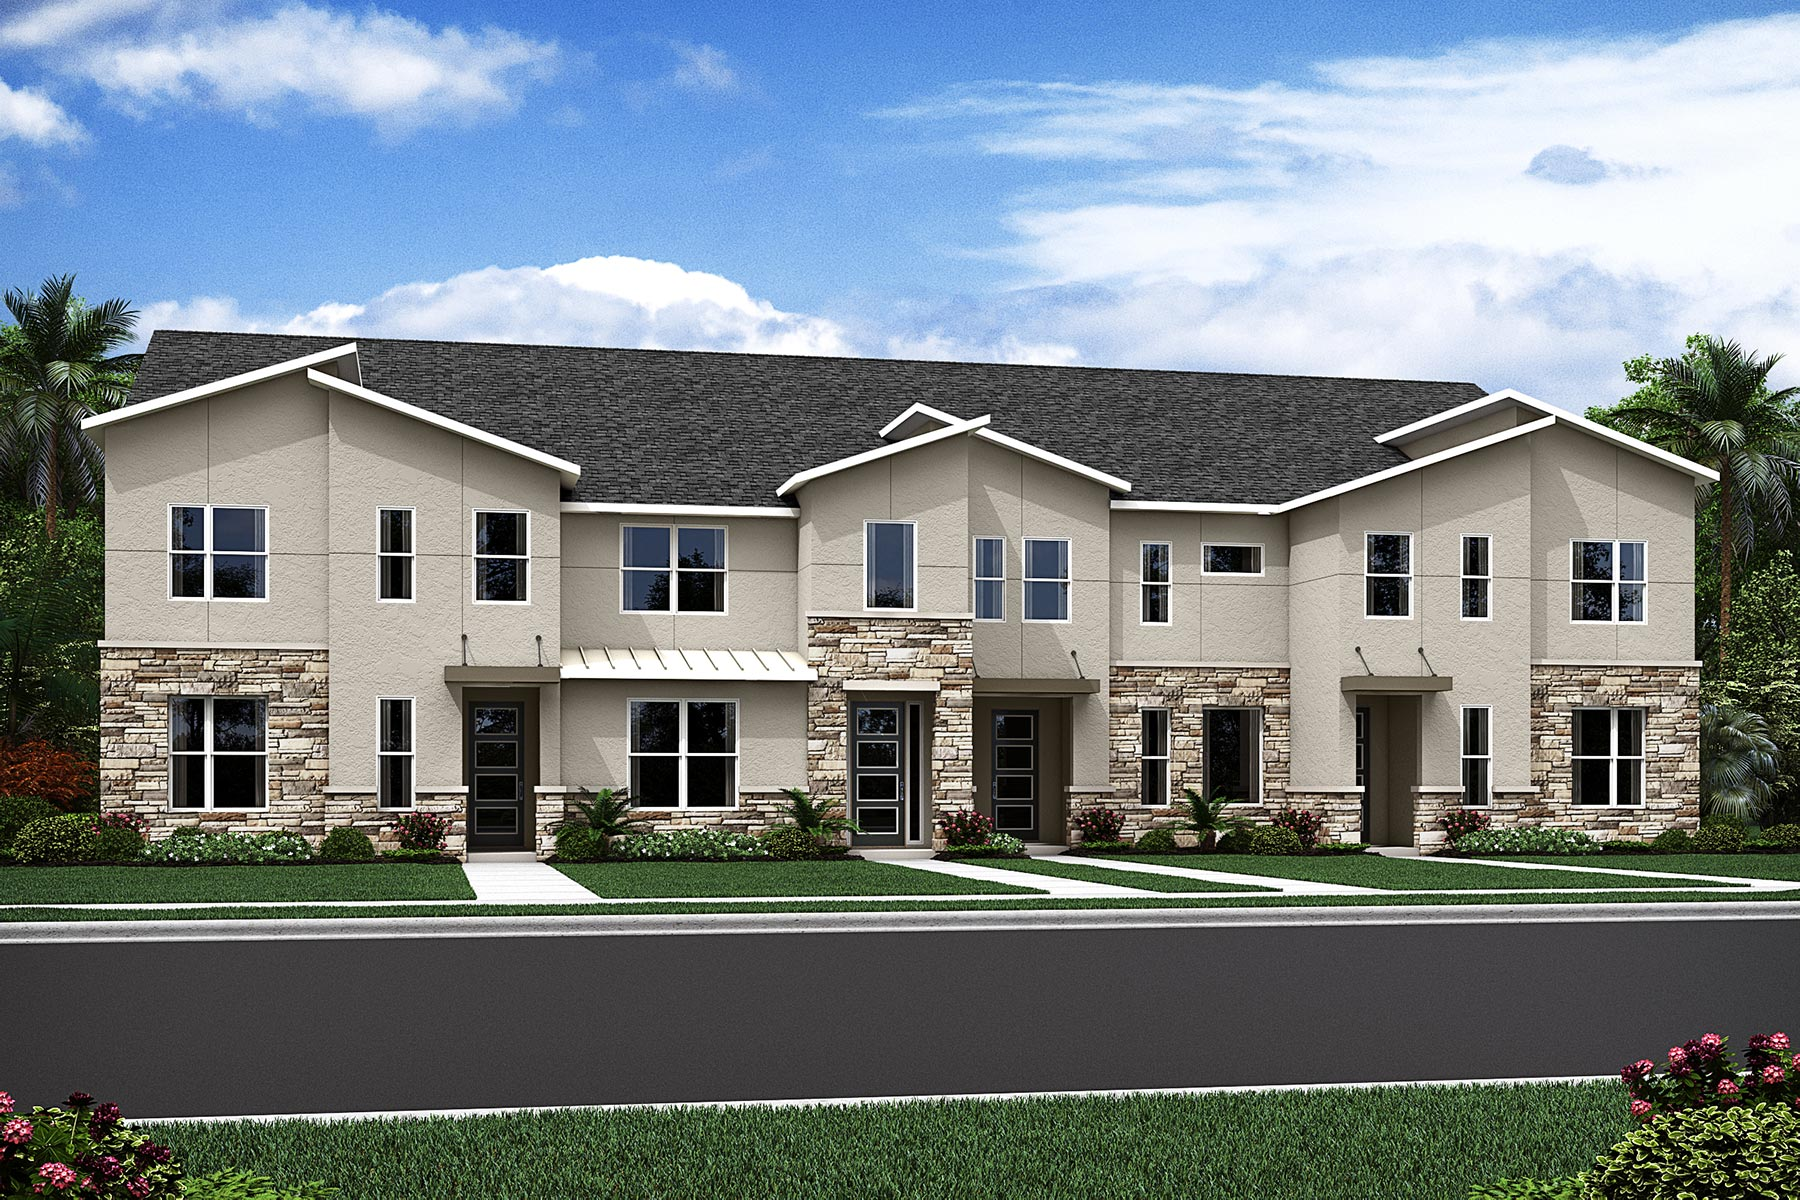 Destin Plan TownHomes at Solara Resort in Kissimmee Florida by Mattamy Homes